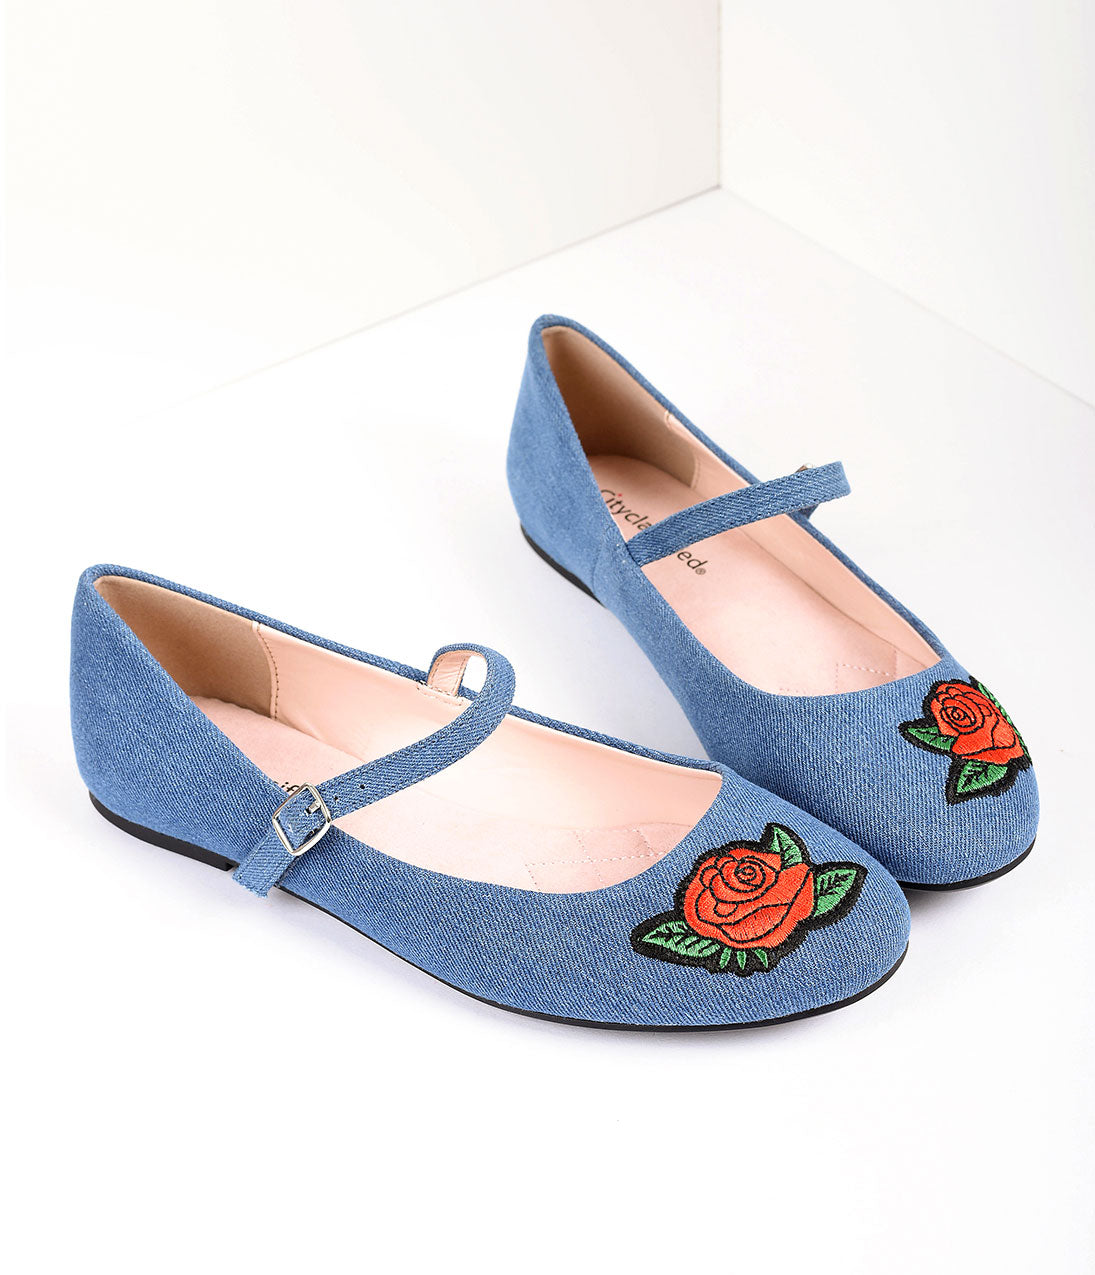 Pin Up Shoes- Heels & Flats Retro Style Blue Denim  Embroidered Red Rose Mary Jane Flats Shoes $28.00 AT vintagedancer.com